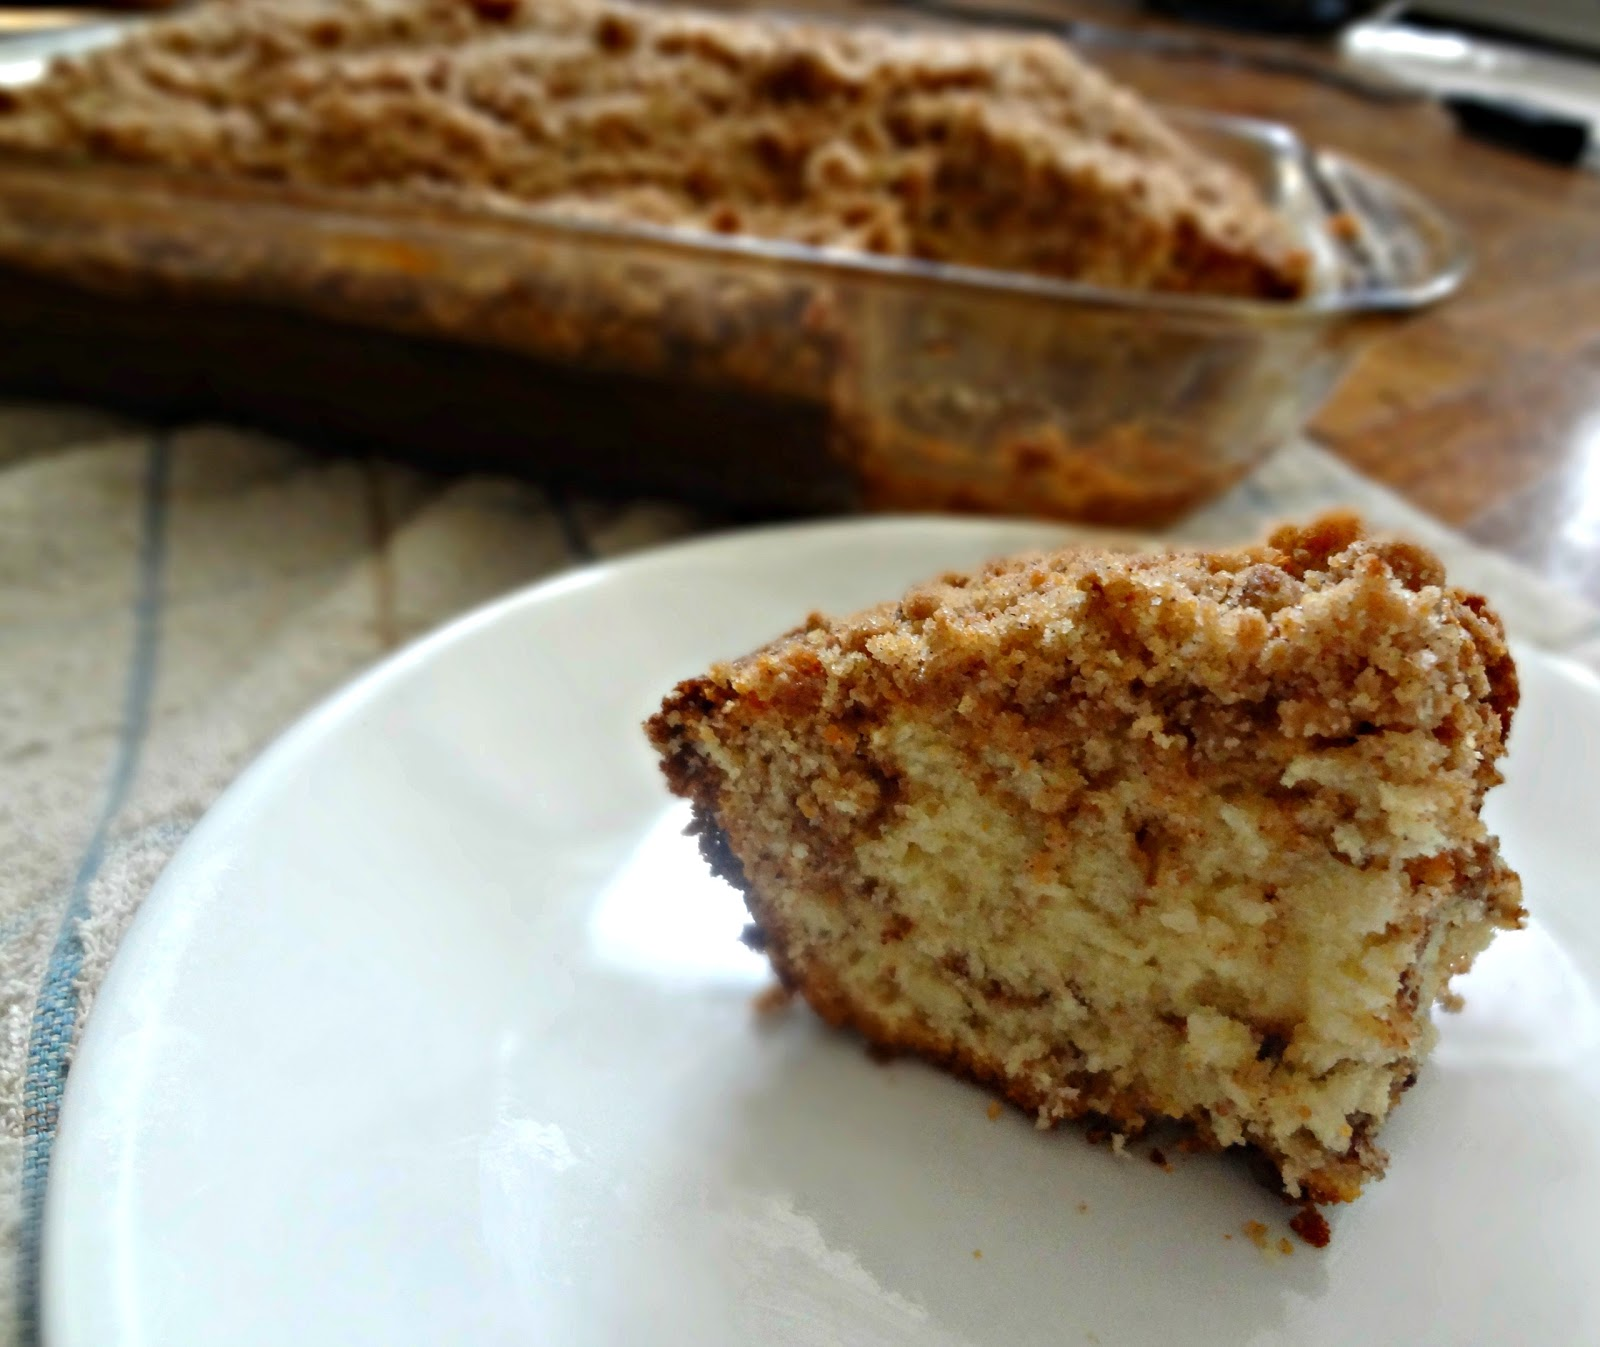 The Cooking Actress: Cinnamon Streusel Coffee Cake + CHOBANI Review